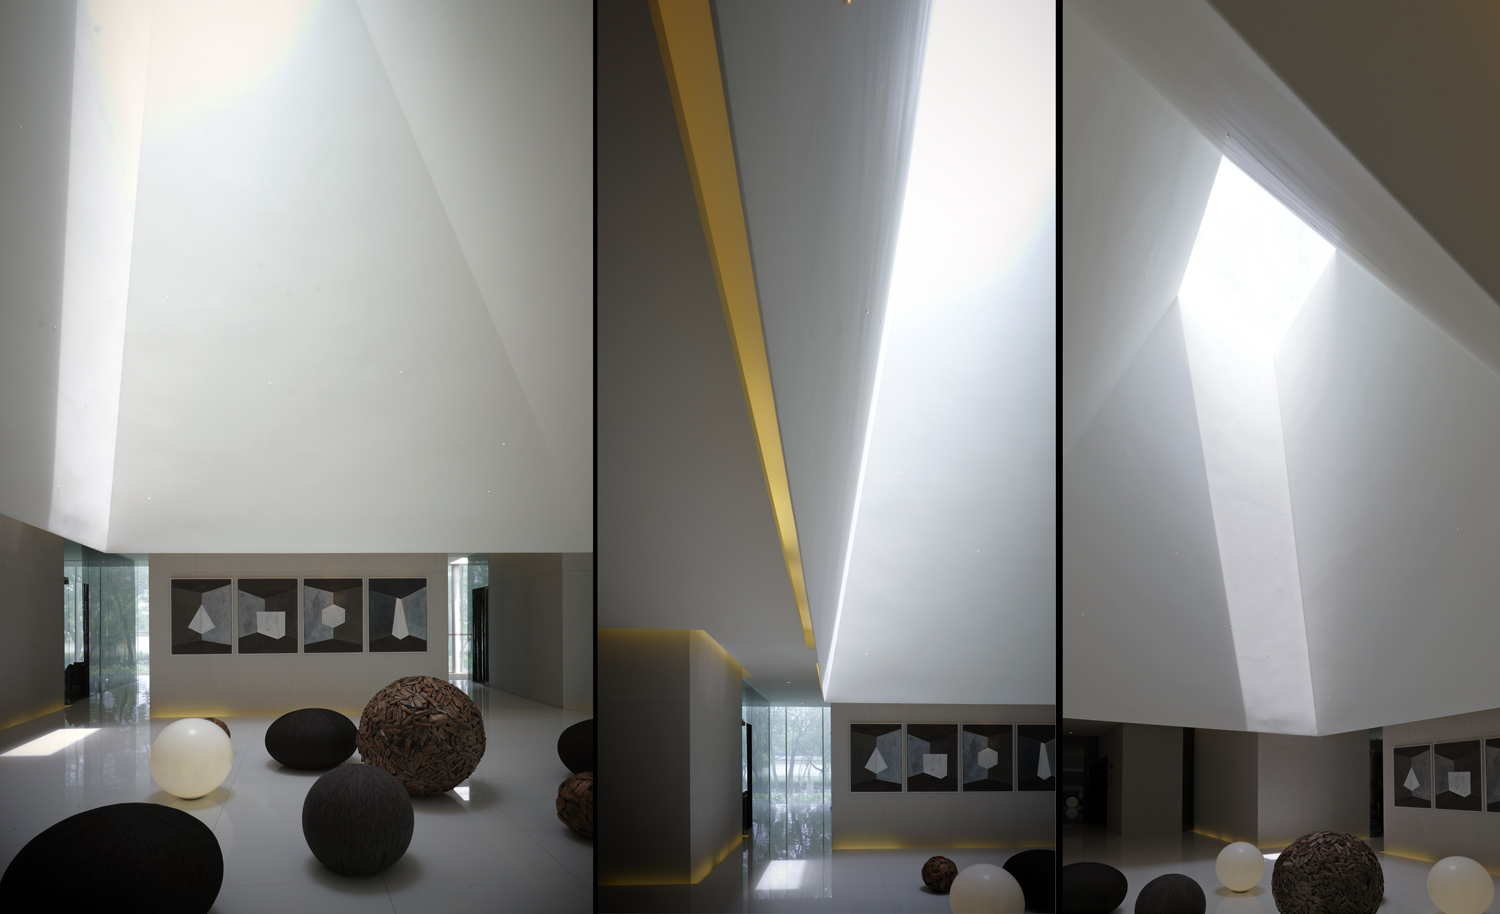 mm_Lightbox design by Hsuyuan Kuo Architect & Associates_13